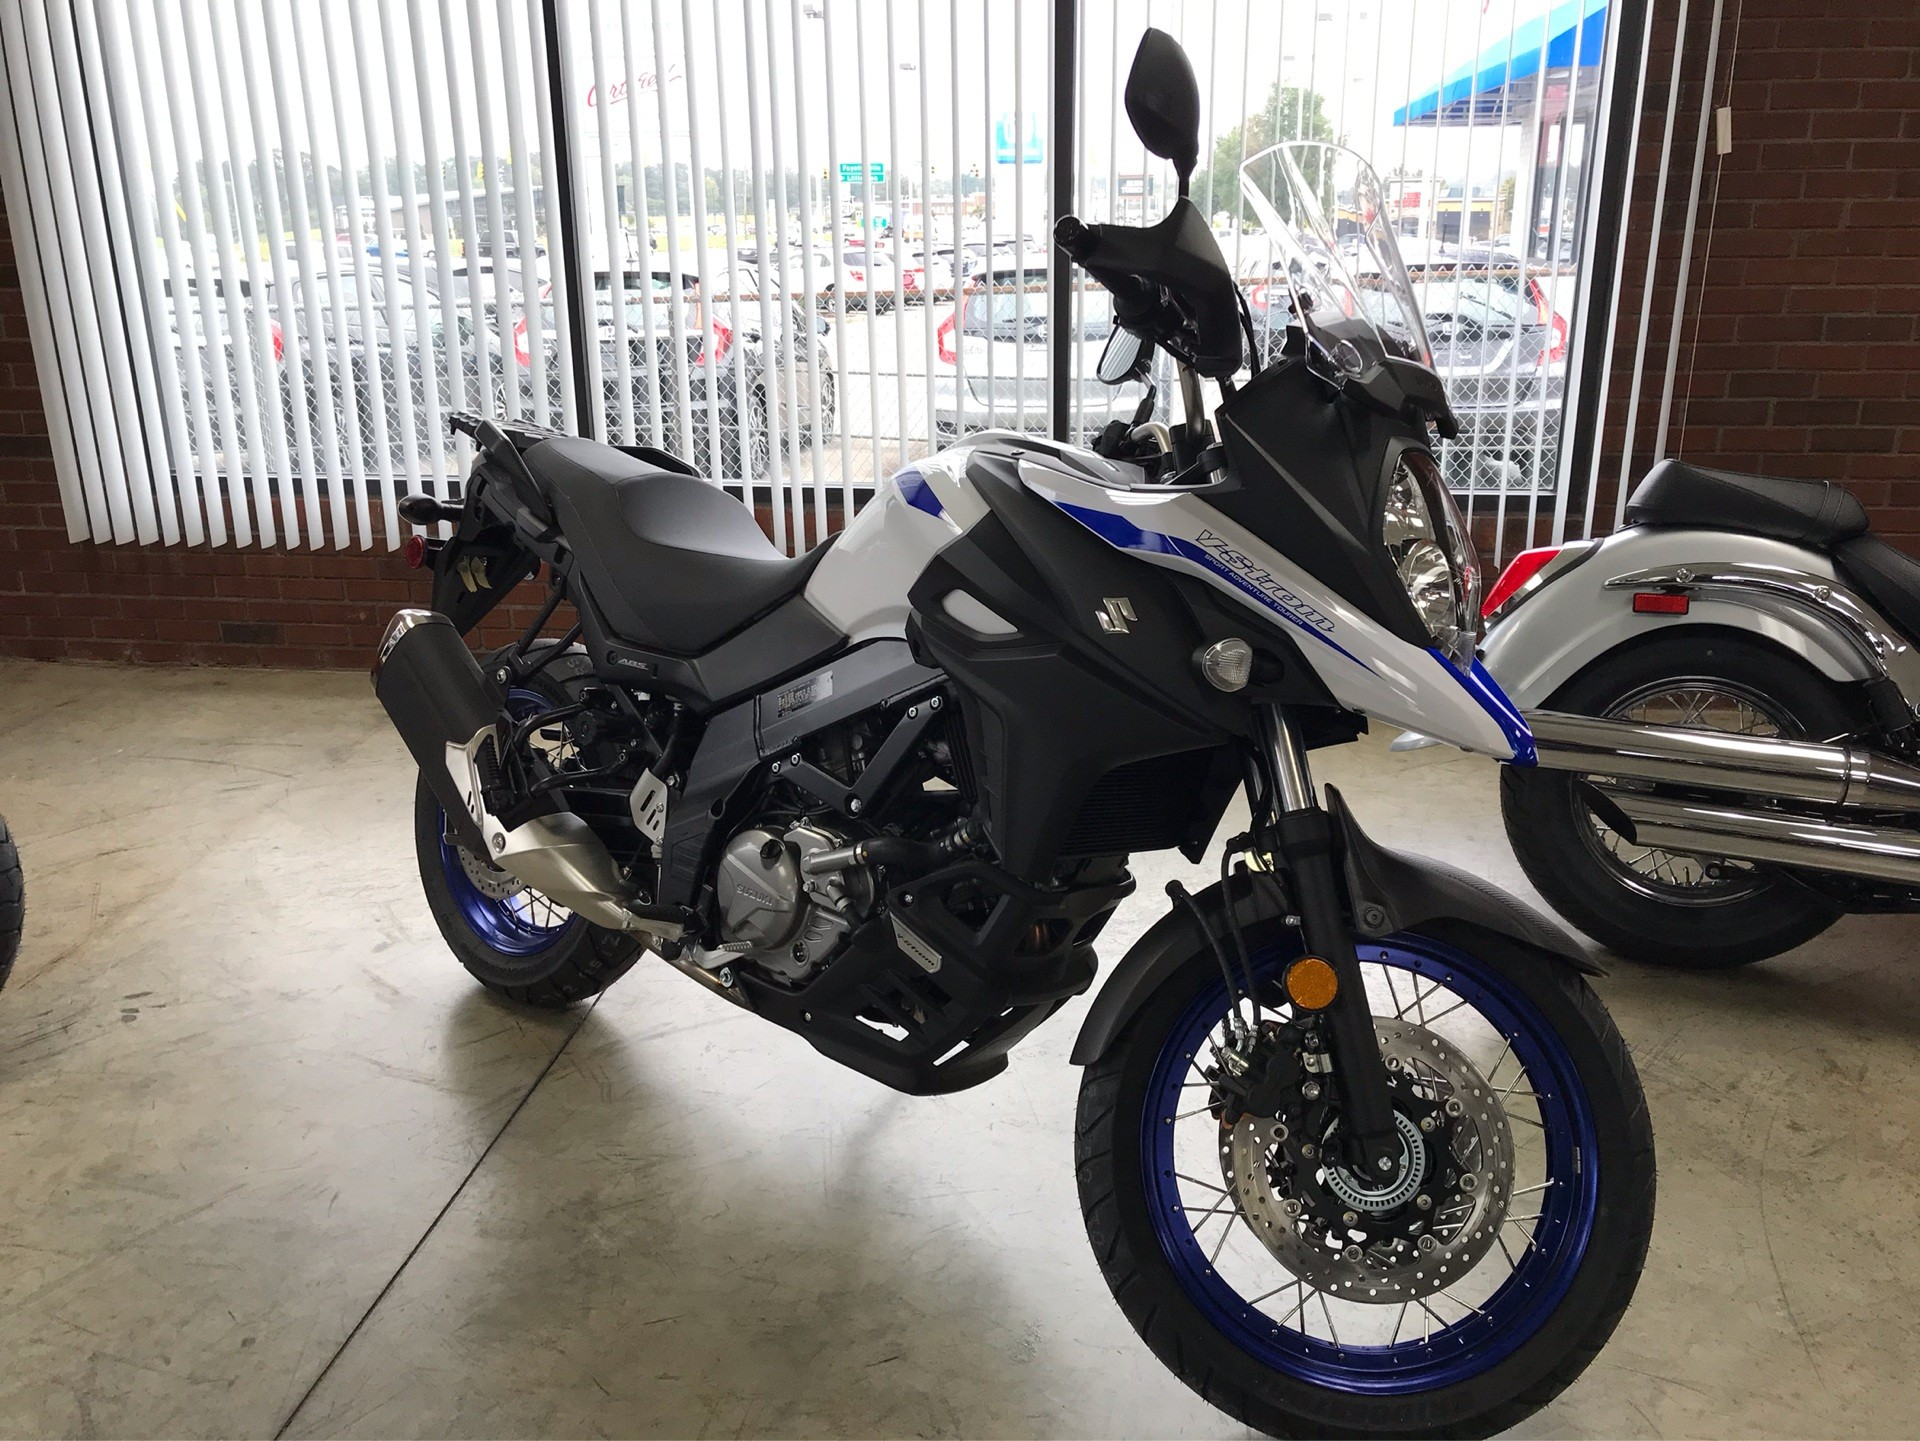 2019 Suzuki V-Strom 650XT in Sanford, North Carolina - Photo 2